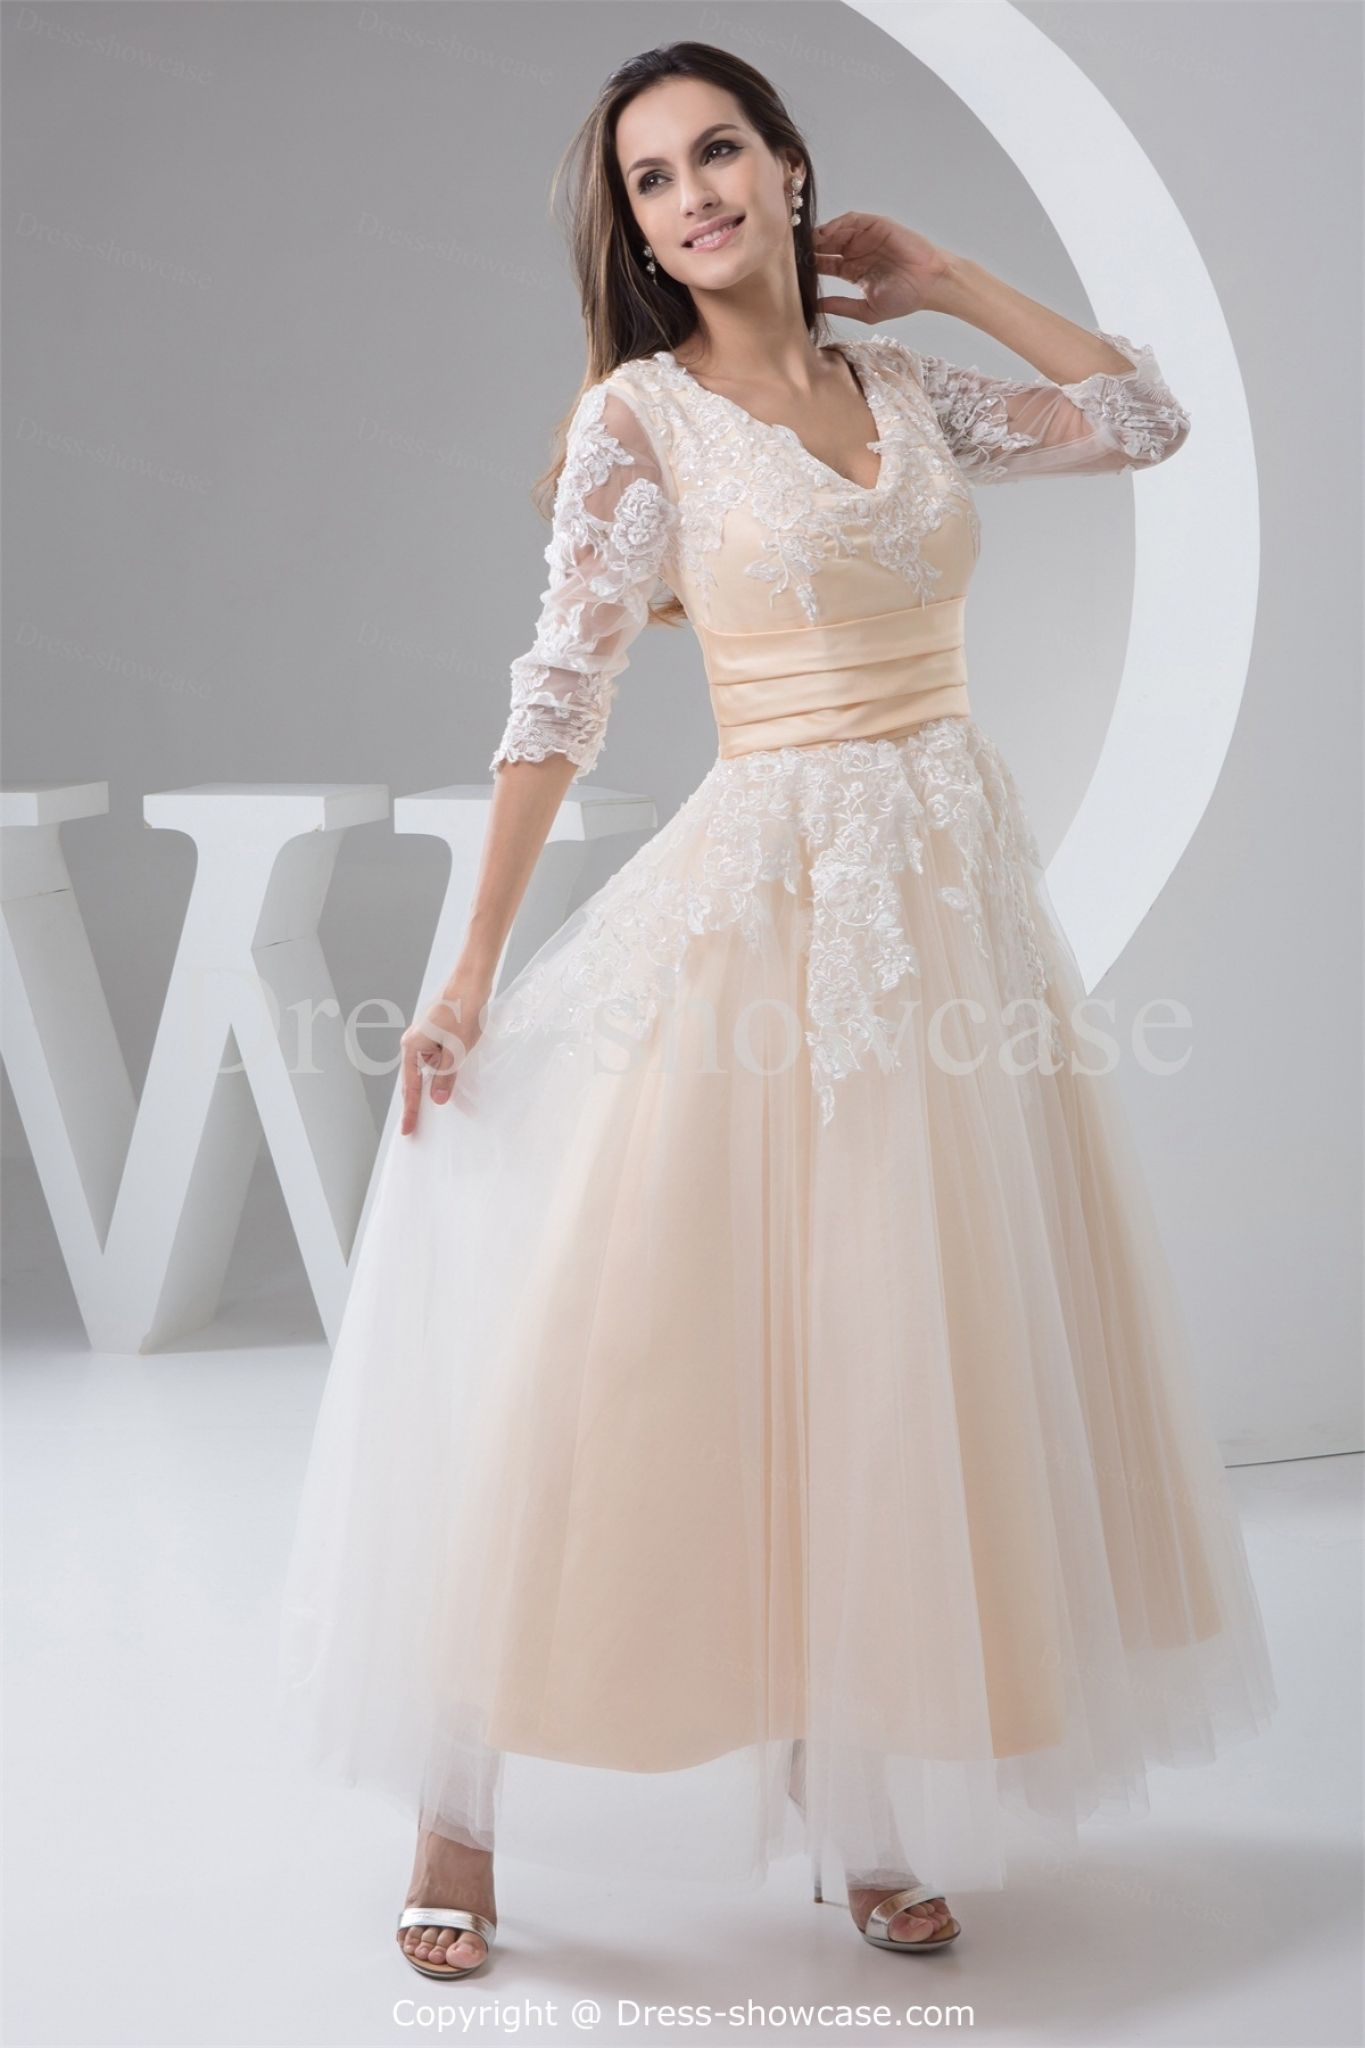 3 4 Length Sleeve Wedding Dress   Dressy Dresses For Weddings Check More At  Http: